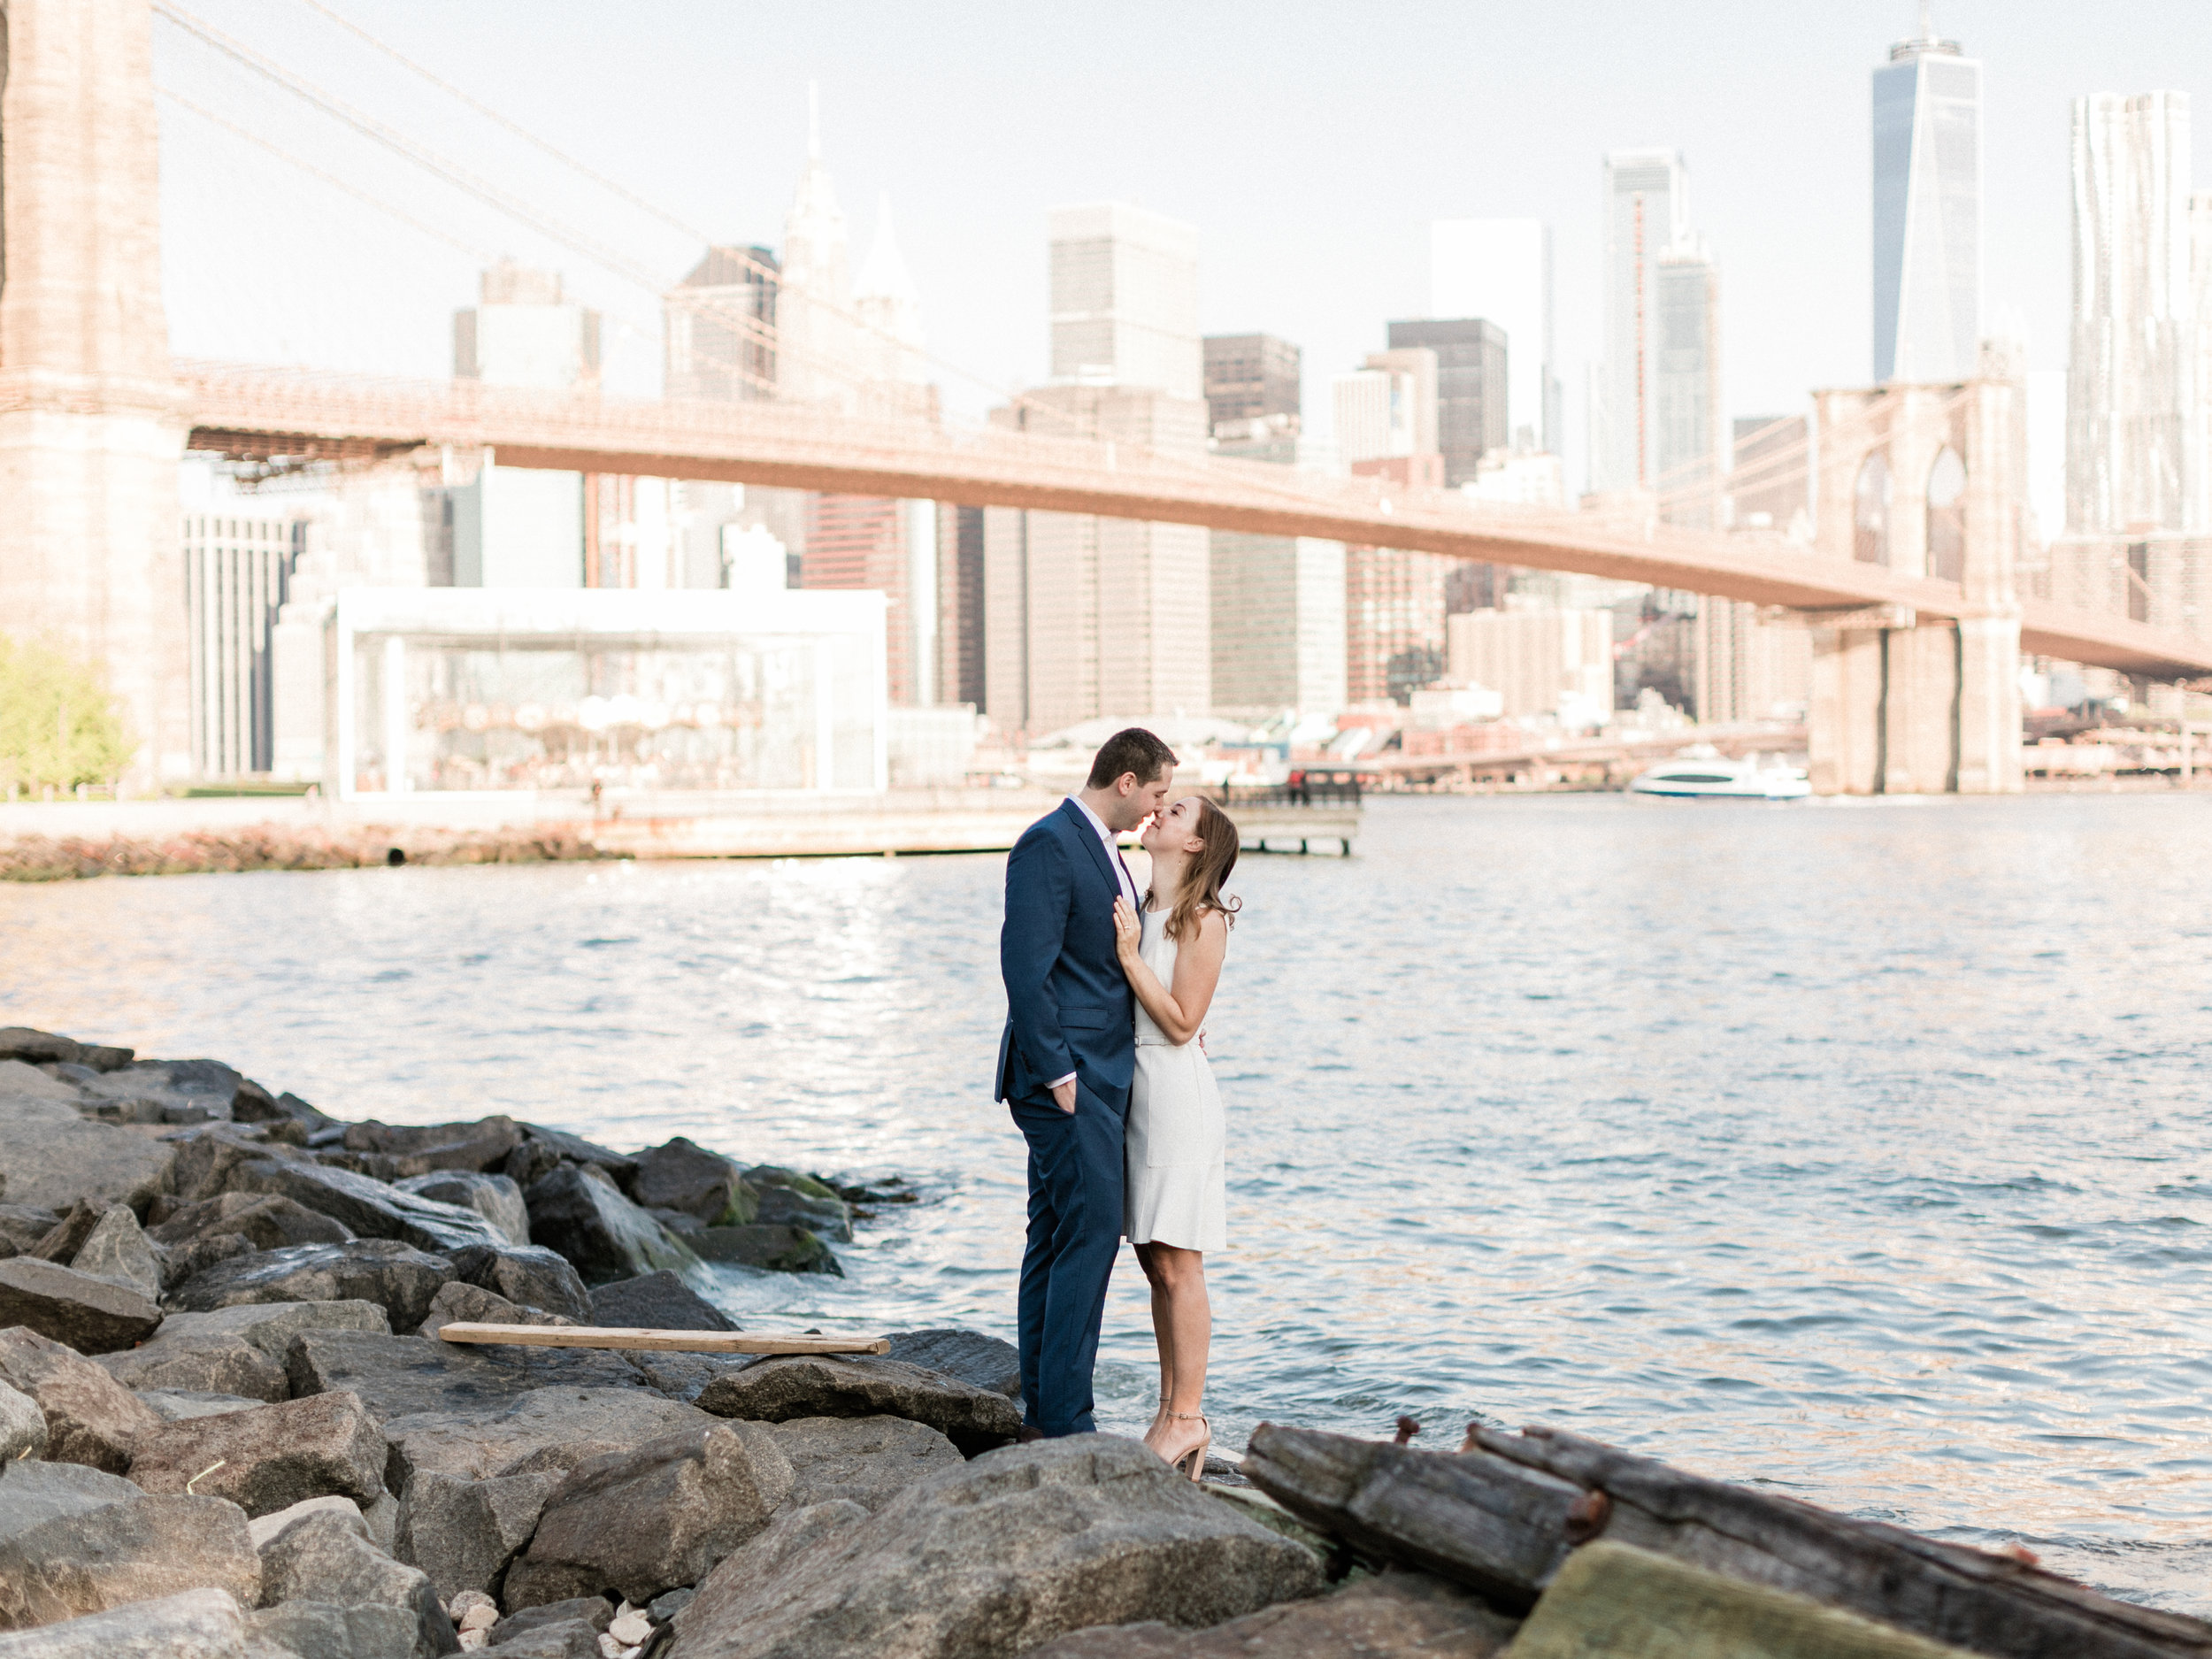 Dumbo-Engagement-Session-Asher-Gardner7.jpg